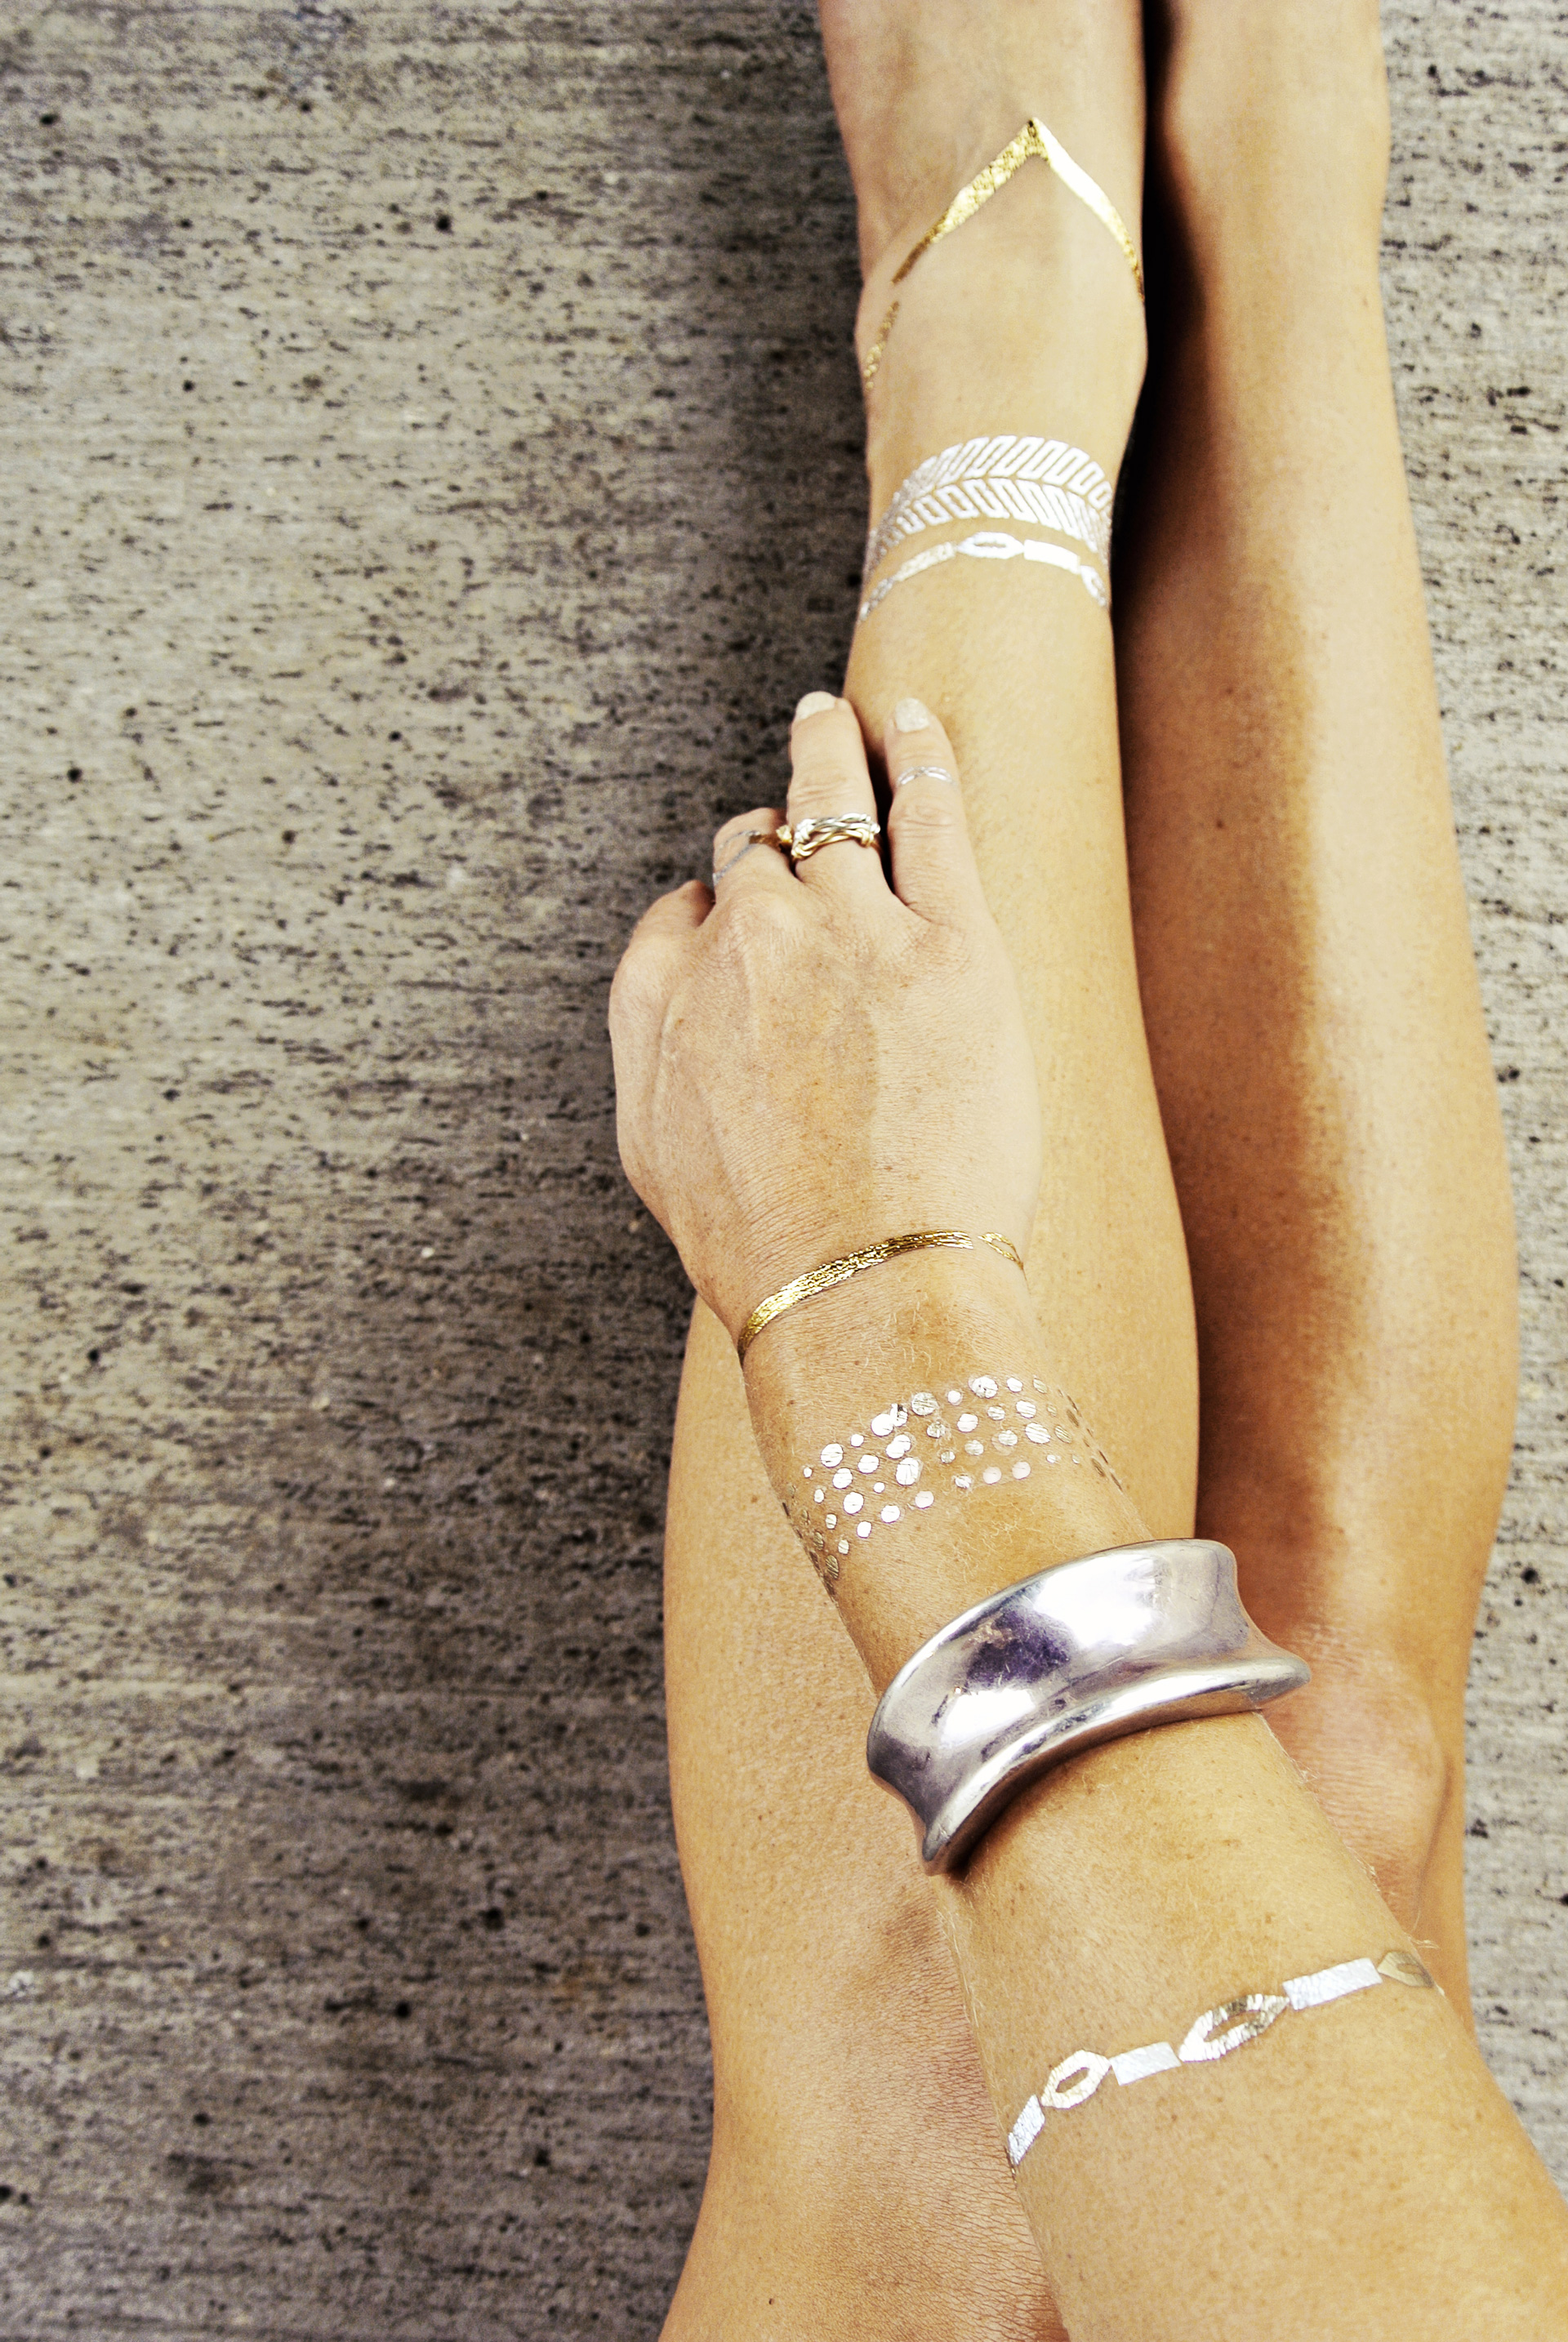 These Temp Tattoos Might Be The Coolest Summer Accessory Yet Sheknows